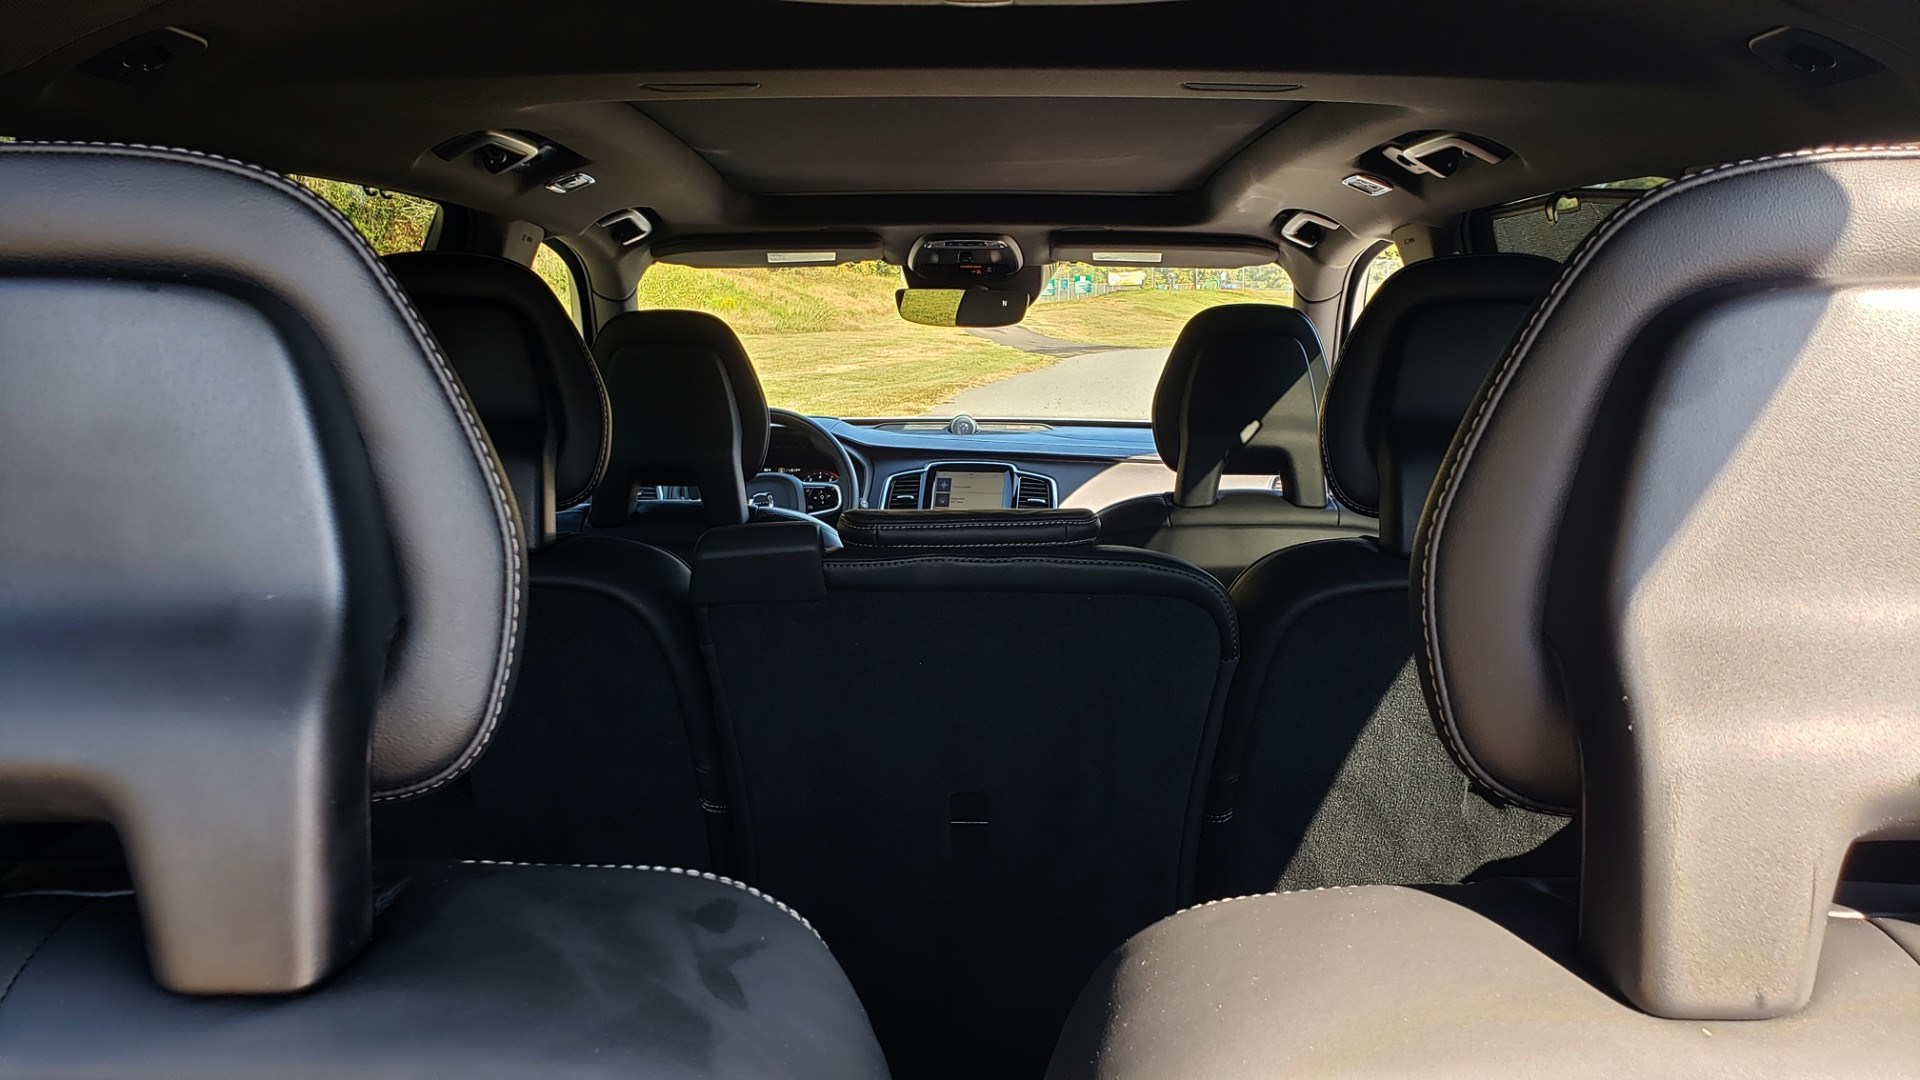 Used 2017 Volvo XC90 INSCRIPTION / AWD / NAV / SUNROOF / 3-ROW / CAMERA for sale Sold at Formula Imports in Charlotte NC 28227 28